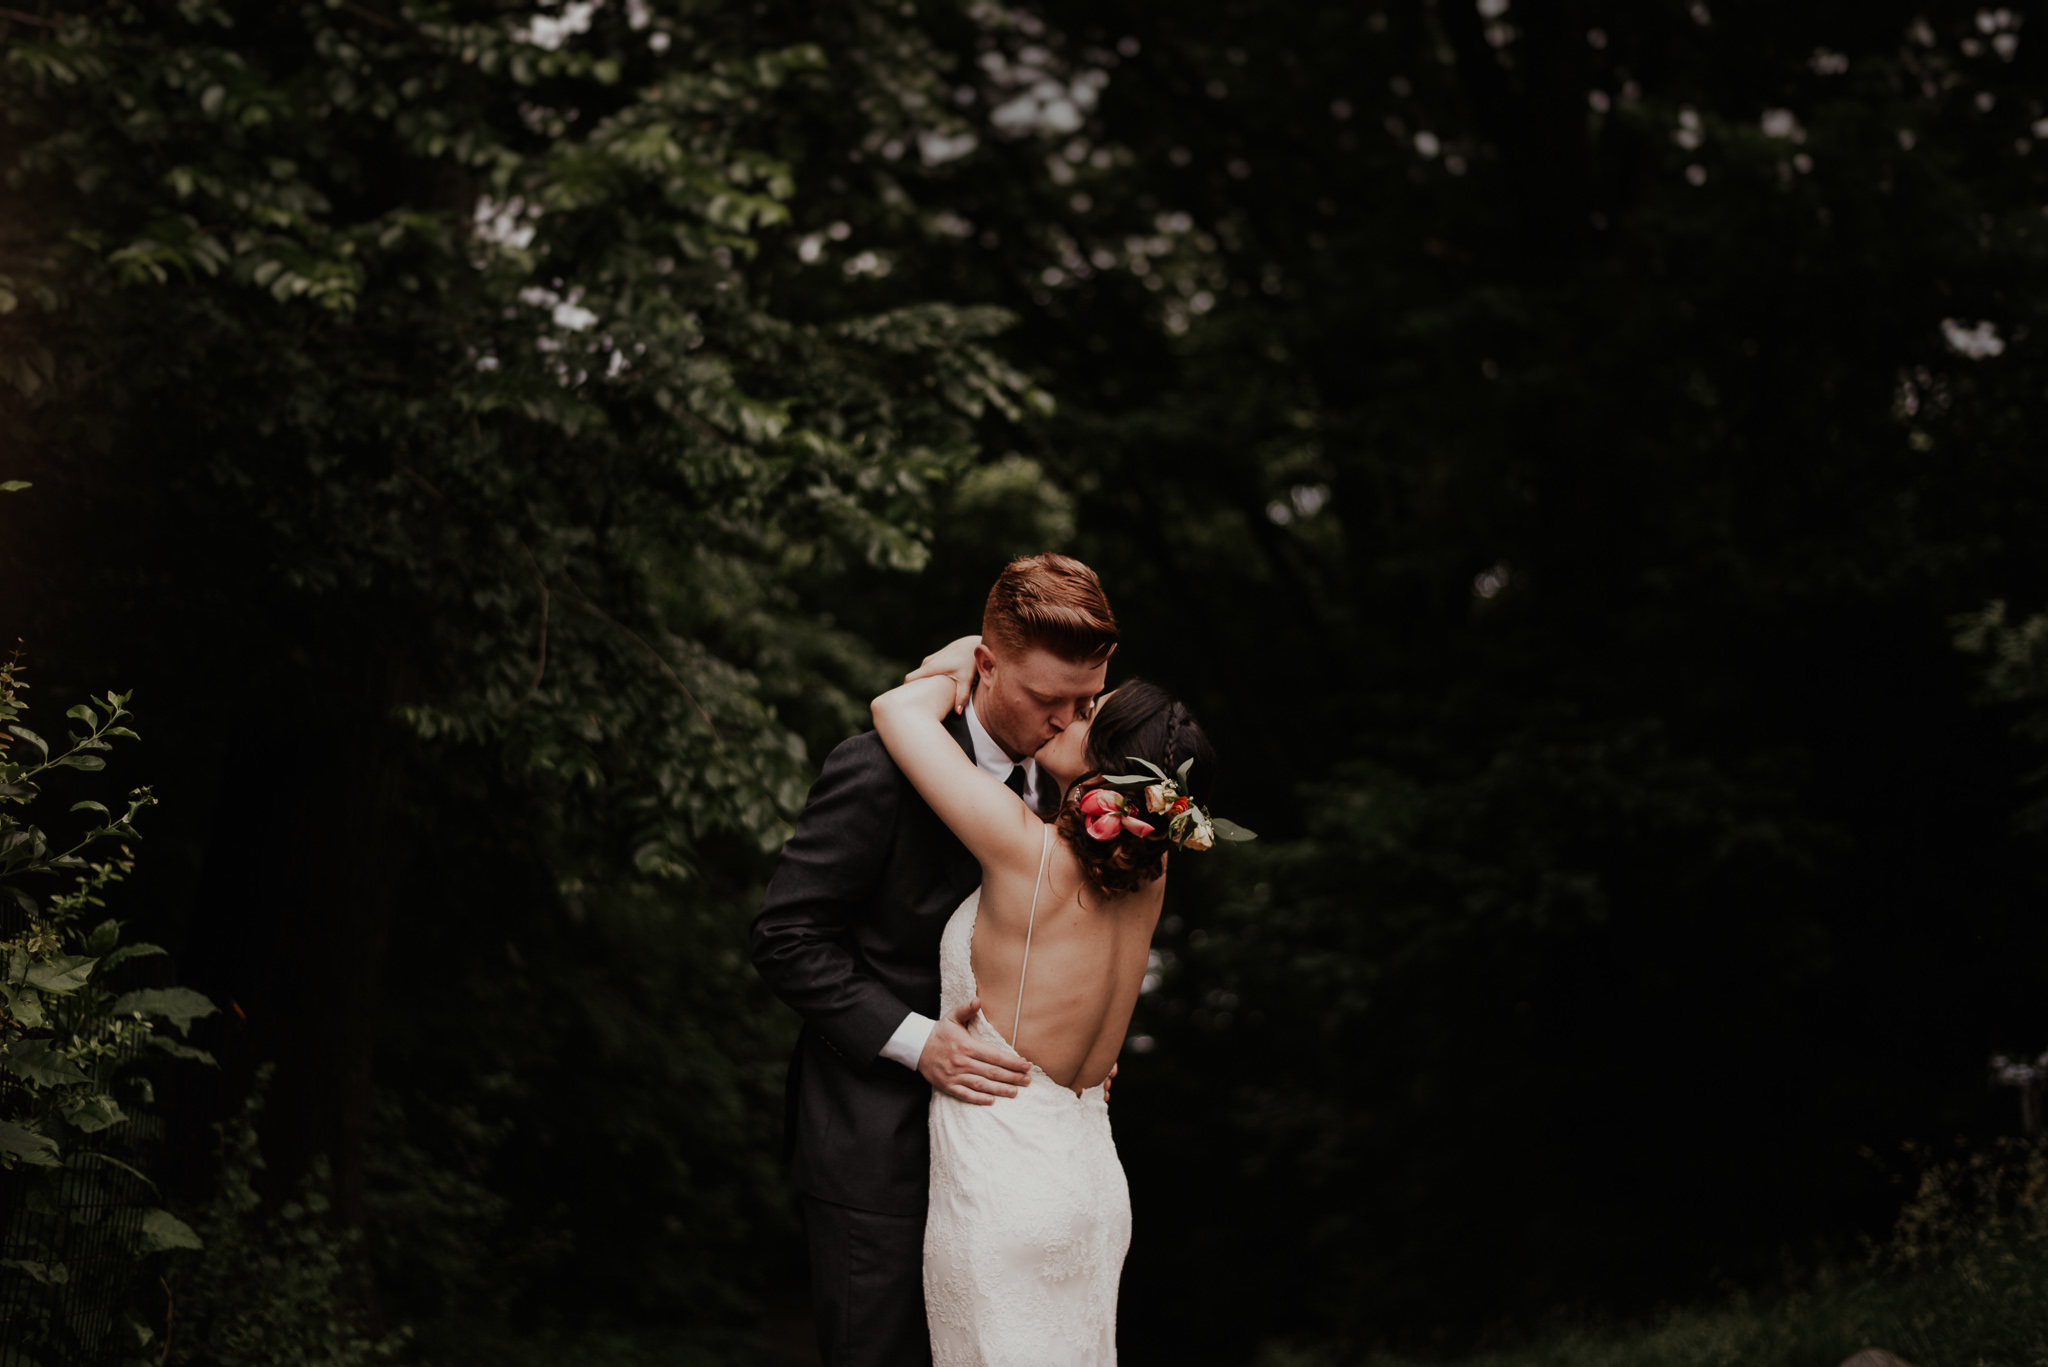 wildsoulsstudio-brooklyn-society-wedding-43.jpg